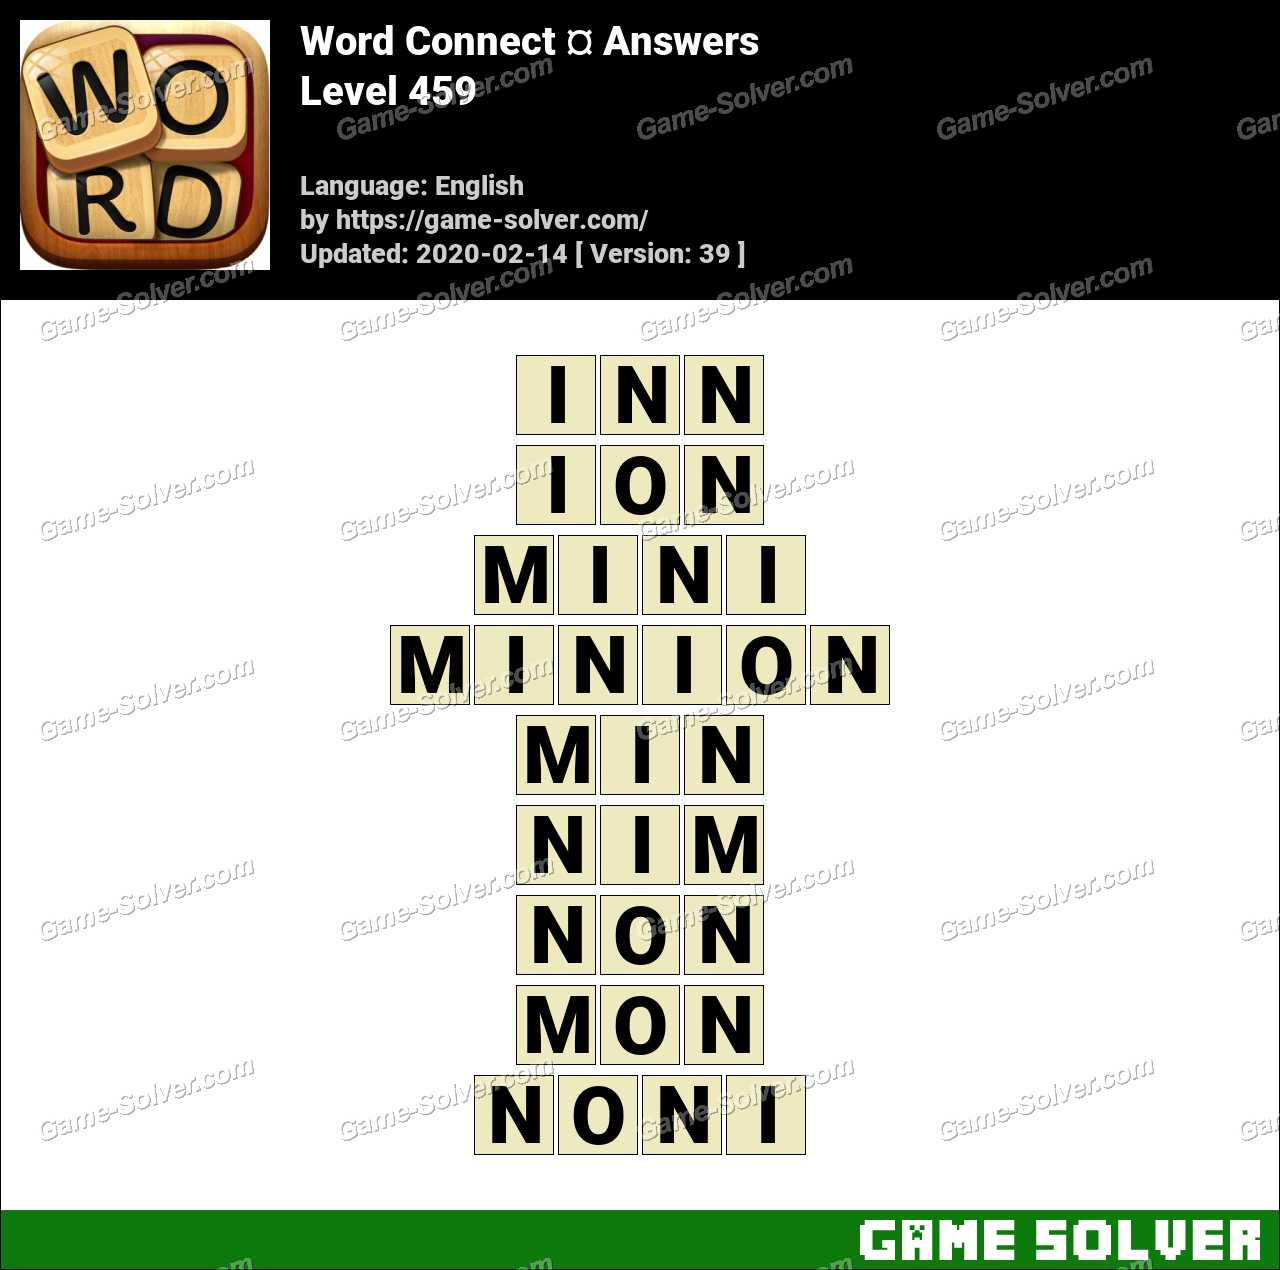 Word Connect Level 459 Answers